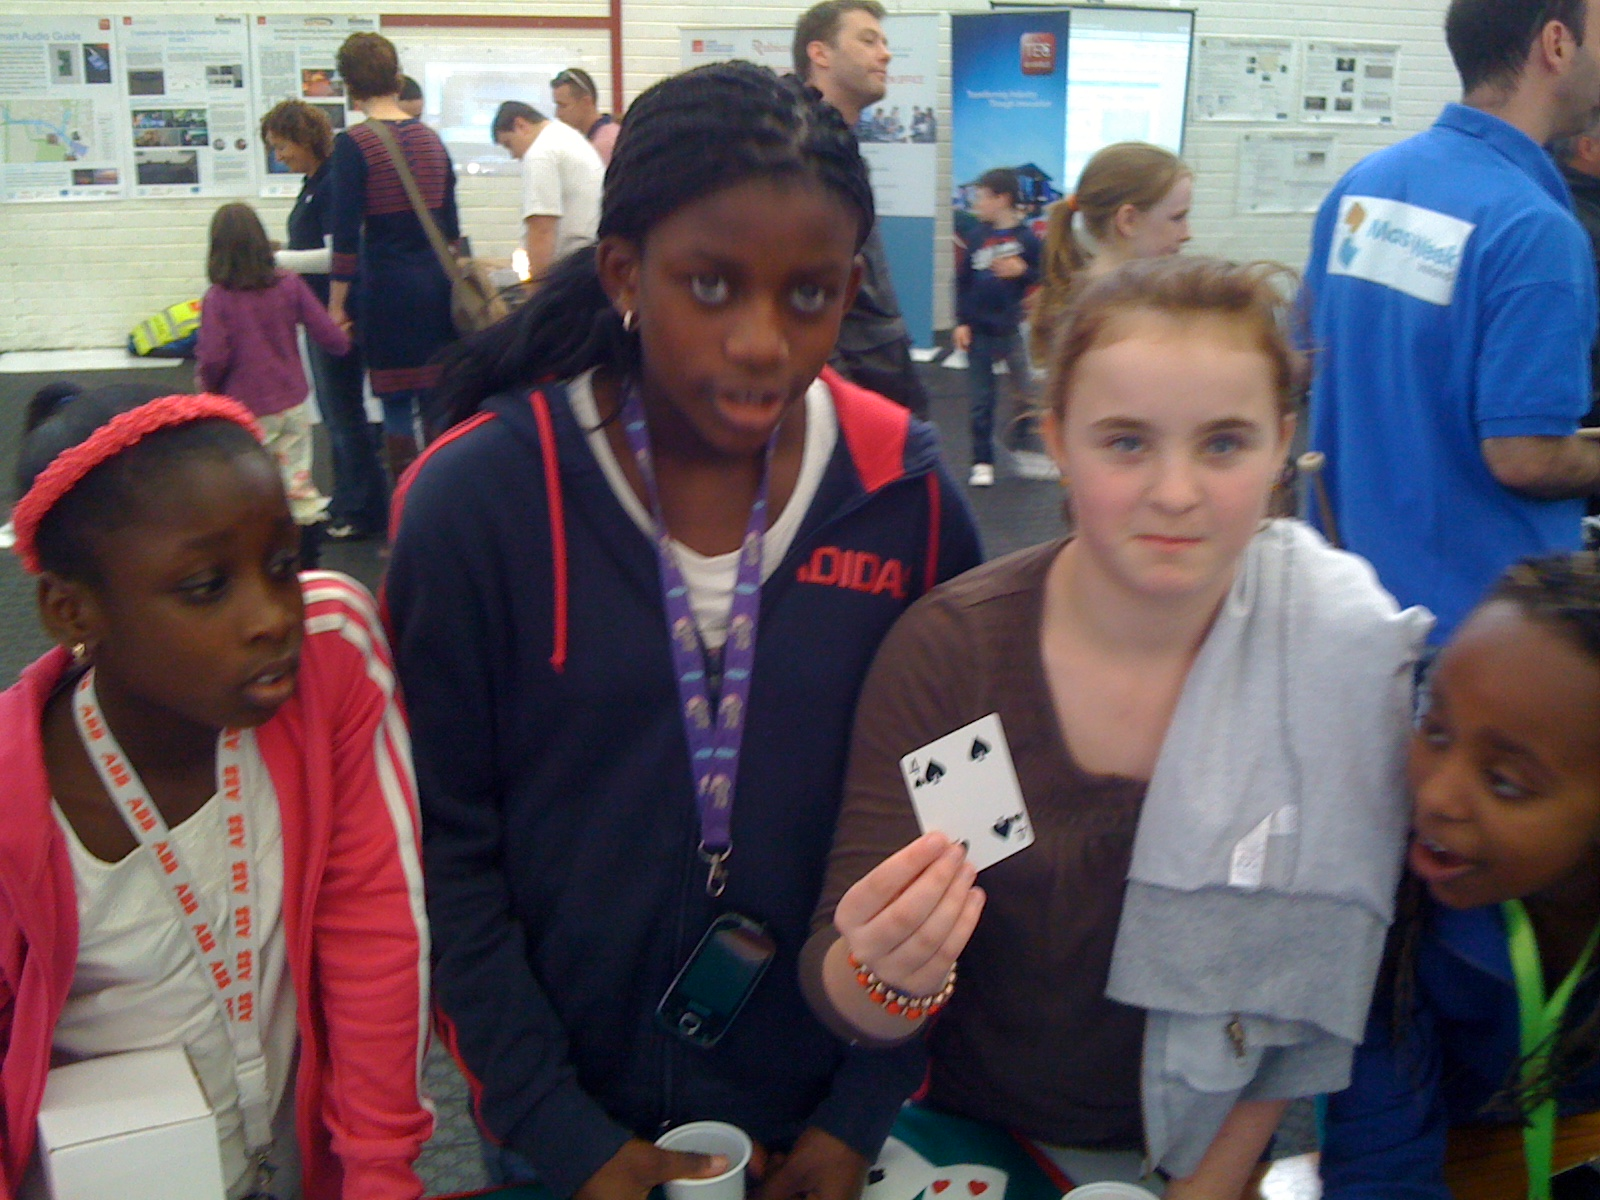 2012-10-24-MathsWeek2.jpg